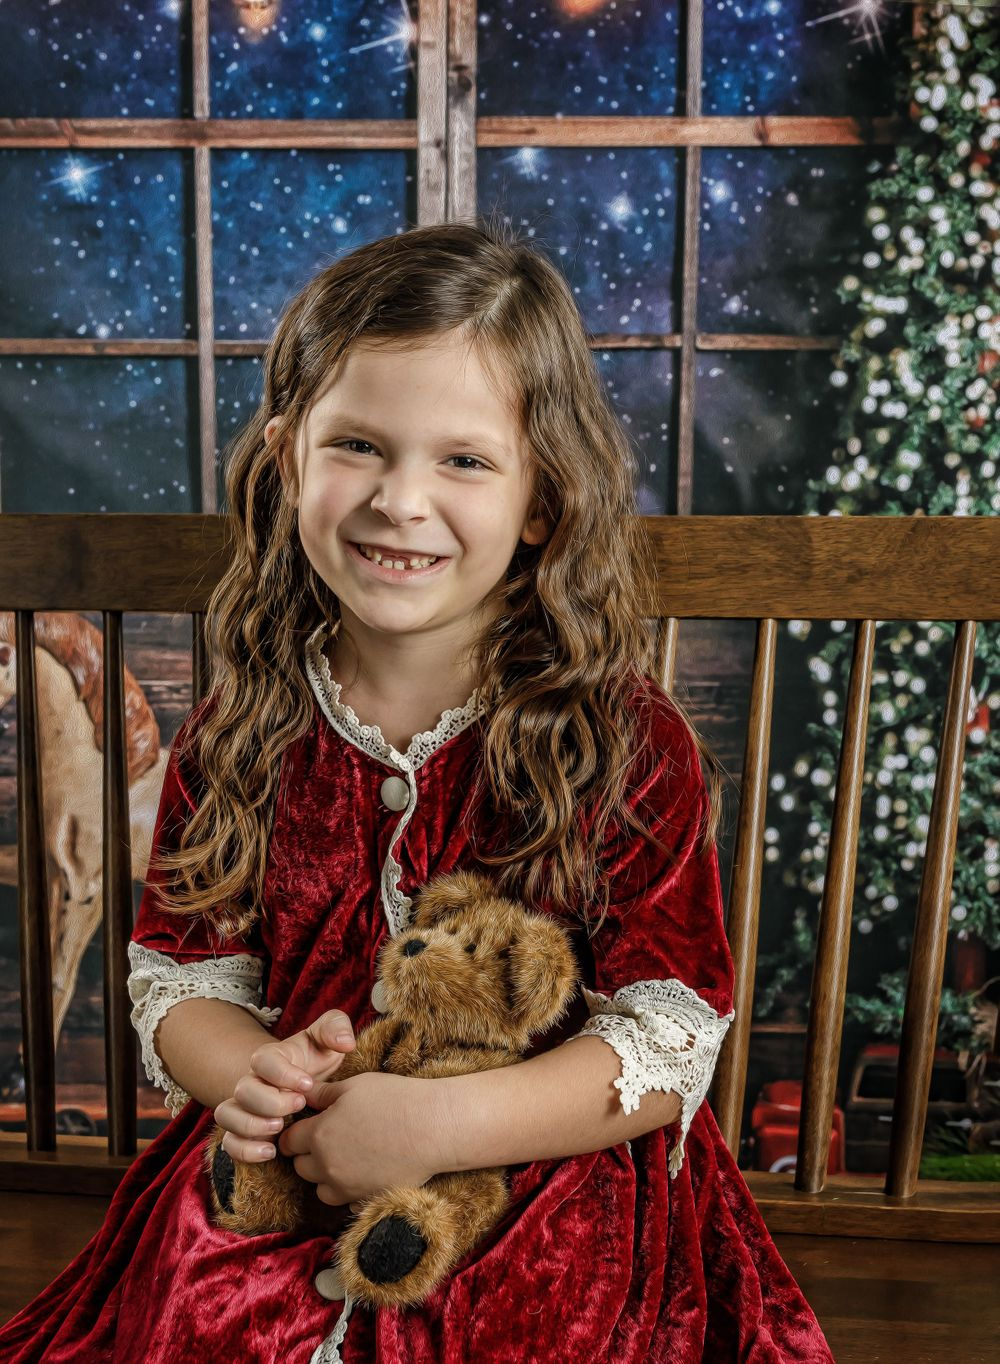 austin newborn photograpy 2020 Magic of the Holidays Limited edition Santa's Magical Workshop All I want for CHristmas